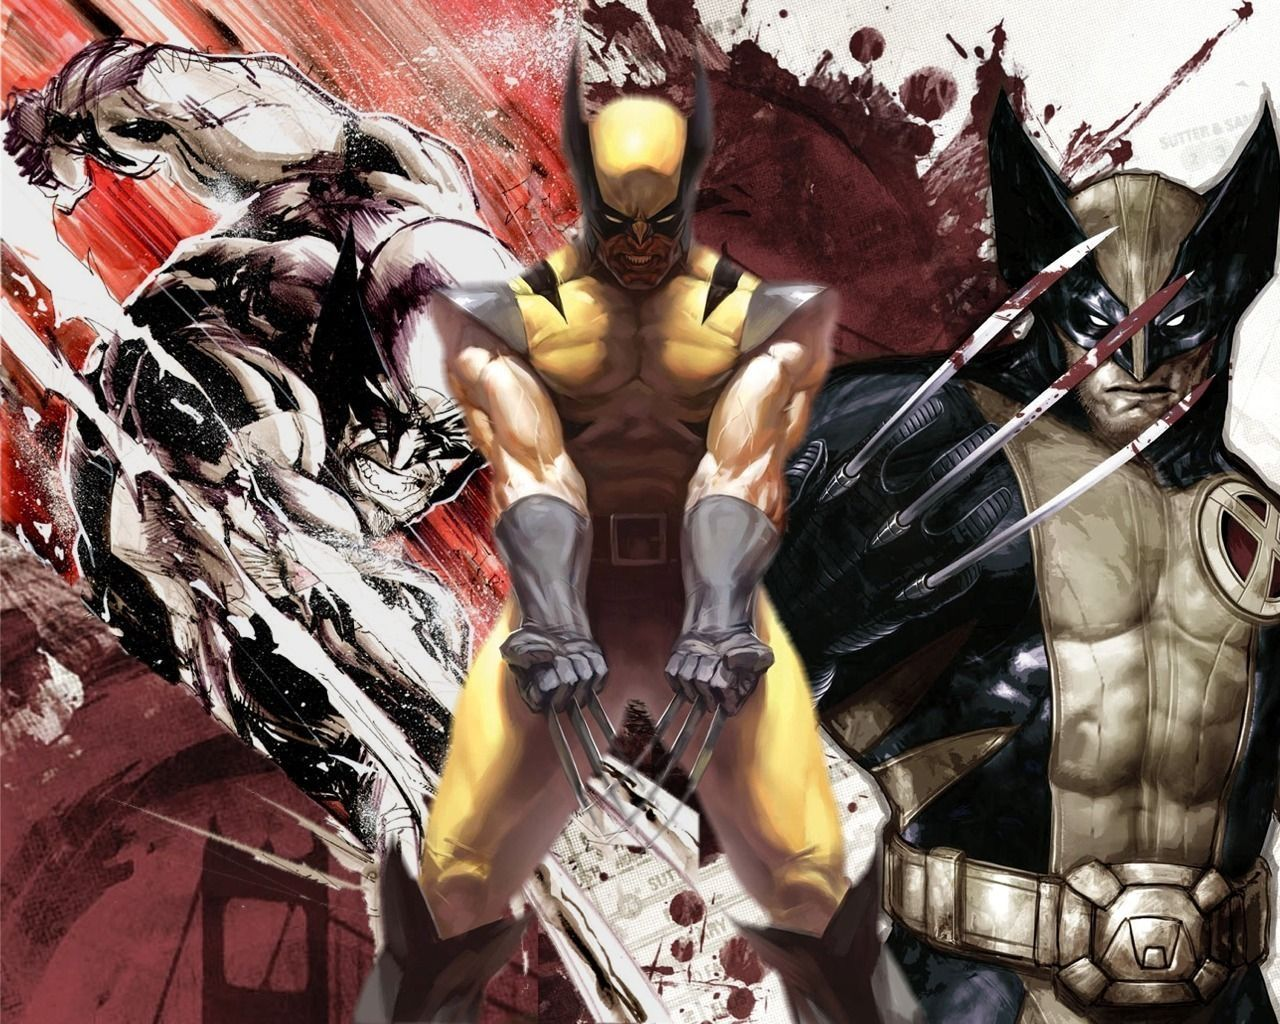 Hugh Jackman Xmen Wolverine Wallpapers Hd Collection The Smashable